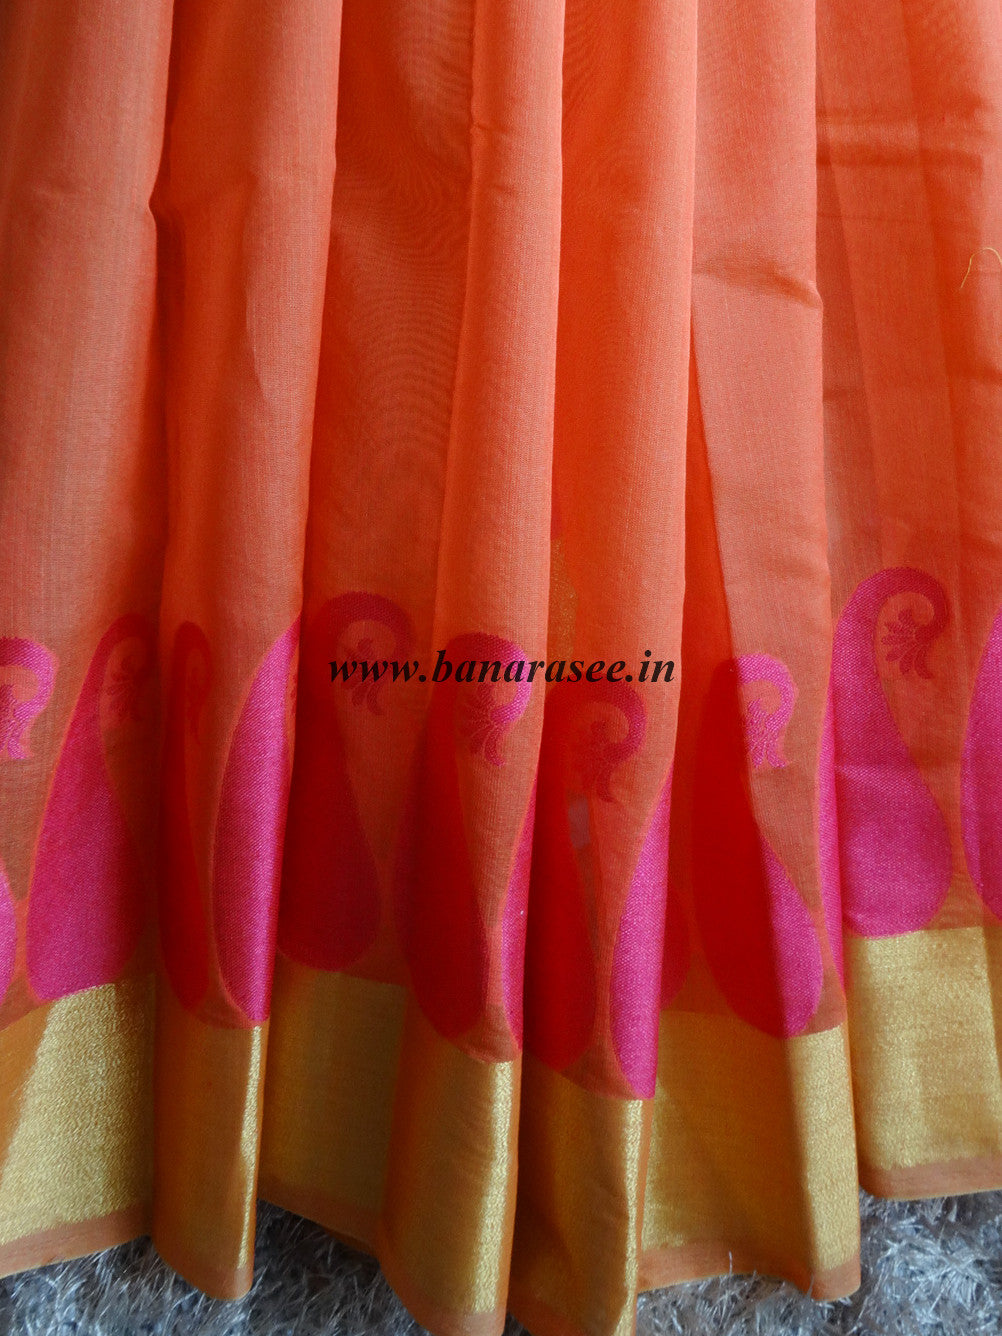 Banarasee Chanderi Cotton Saree Paisley Buti Design-Orange